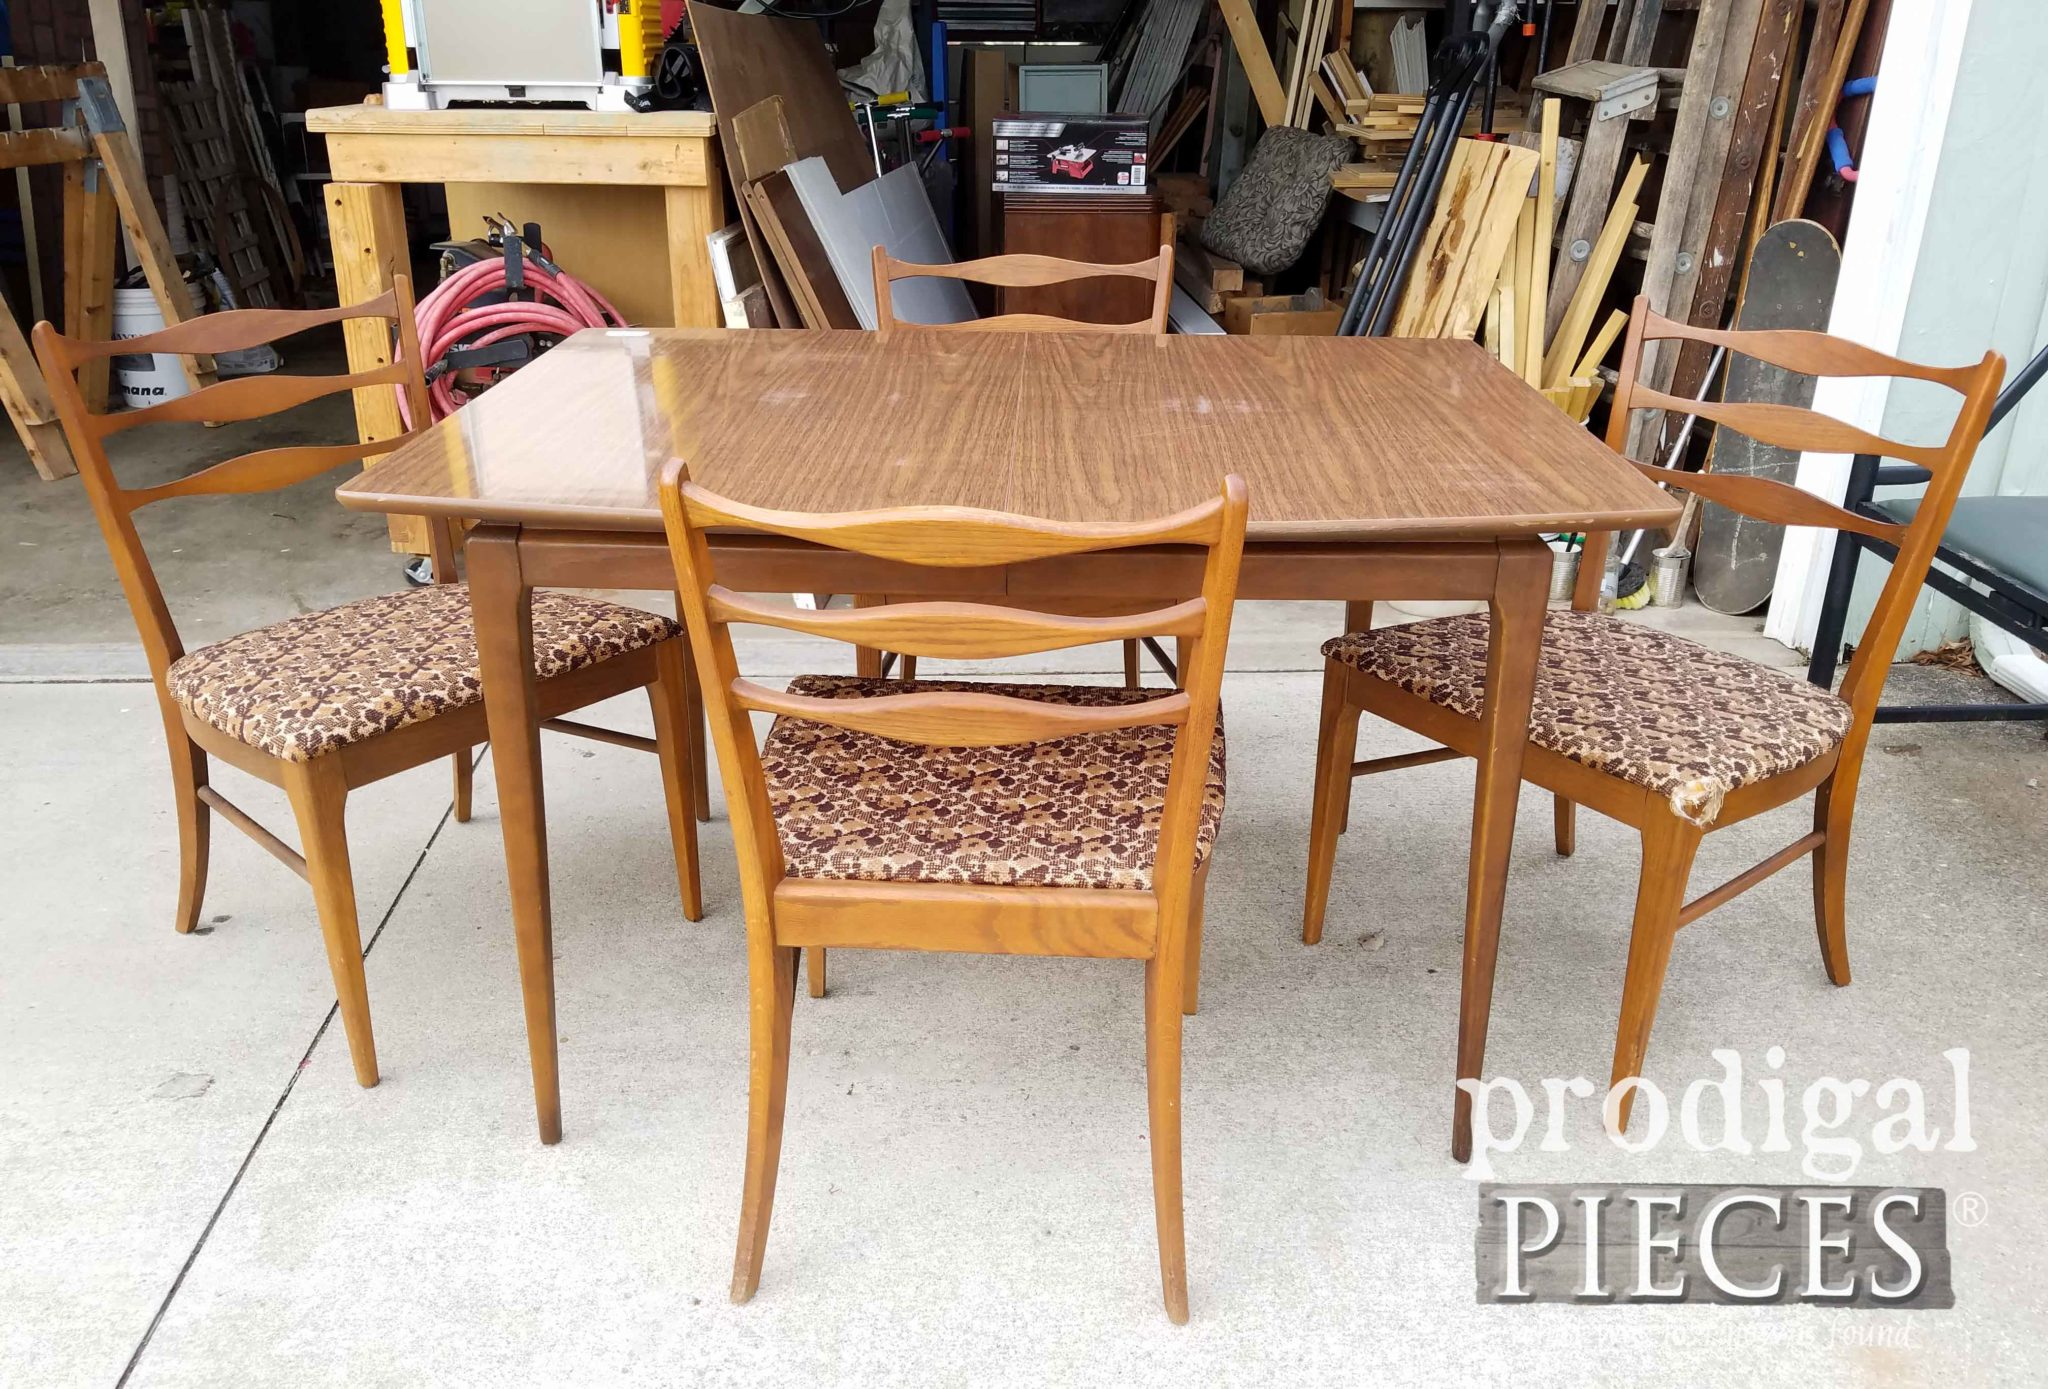 Mid Century Modern Dining Table Before Makeover by Prodigal Pieces | prodigalpieces.com